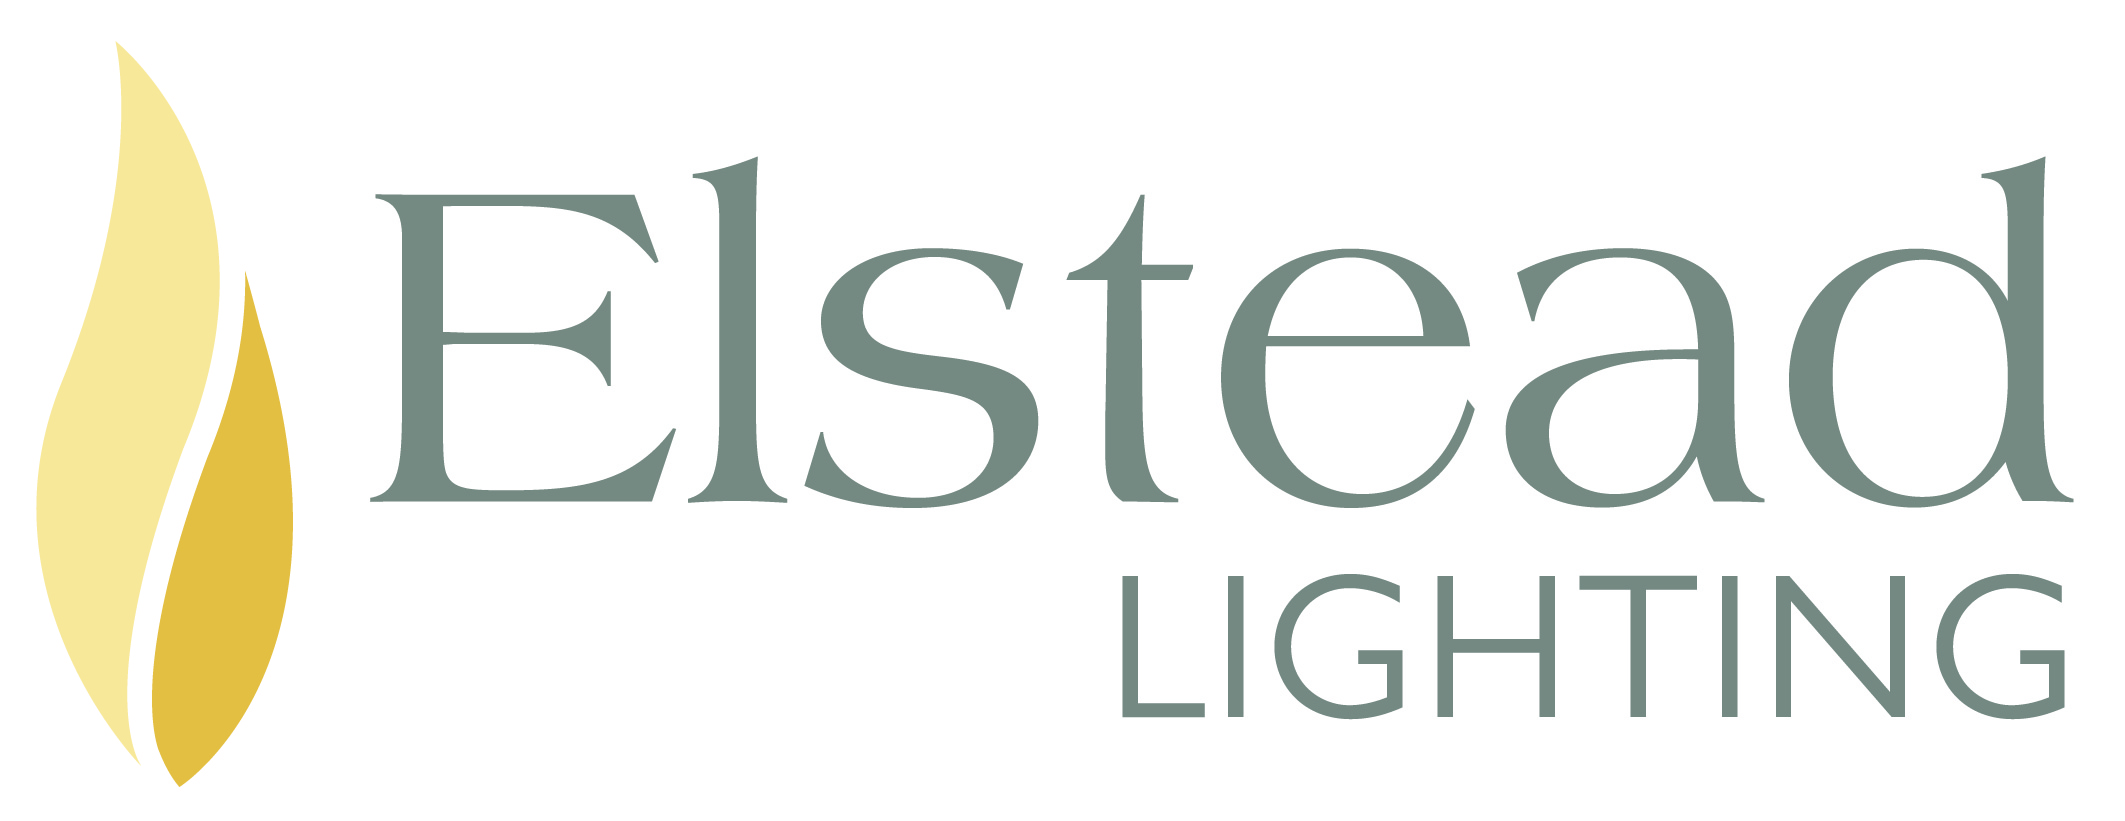 Elstead_Lighting_Logo